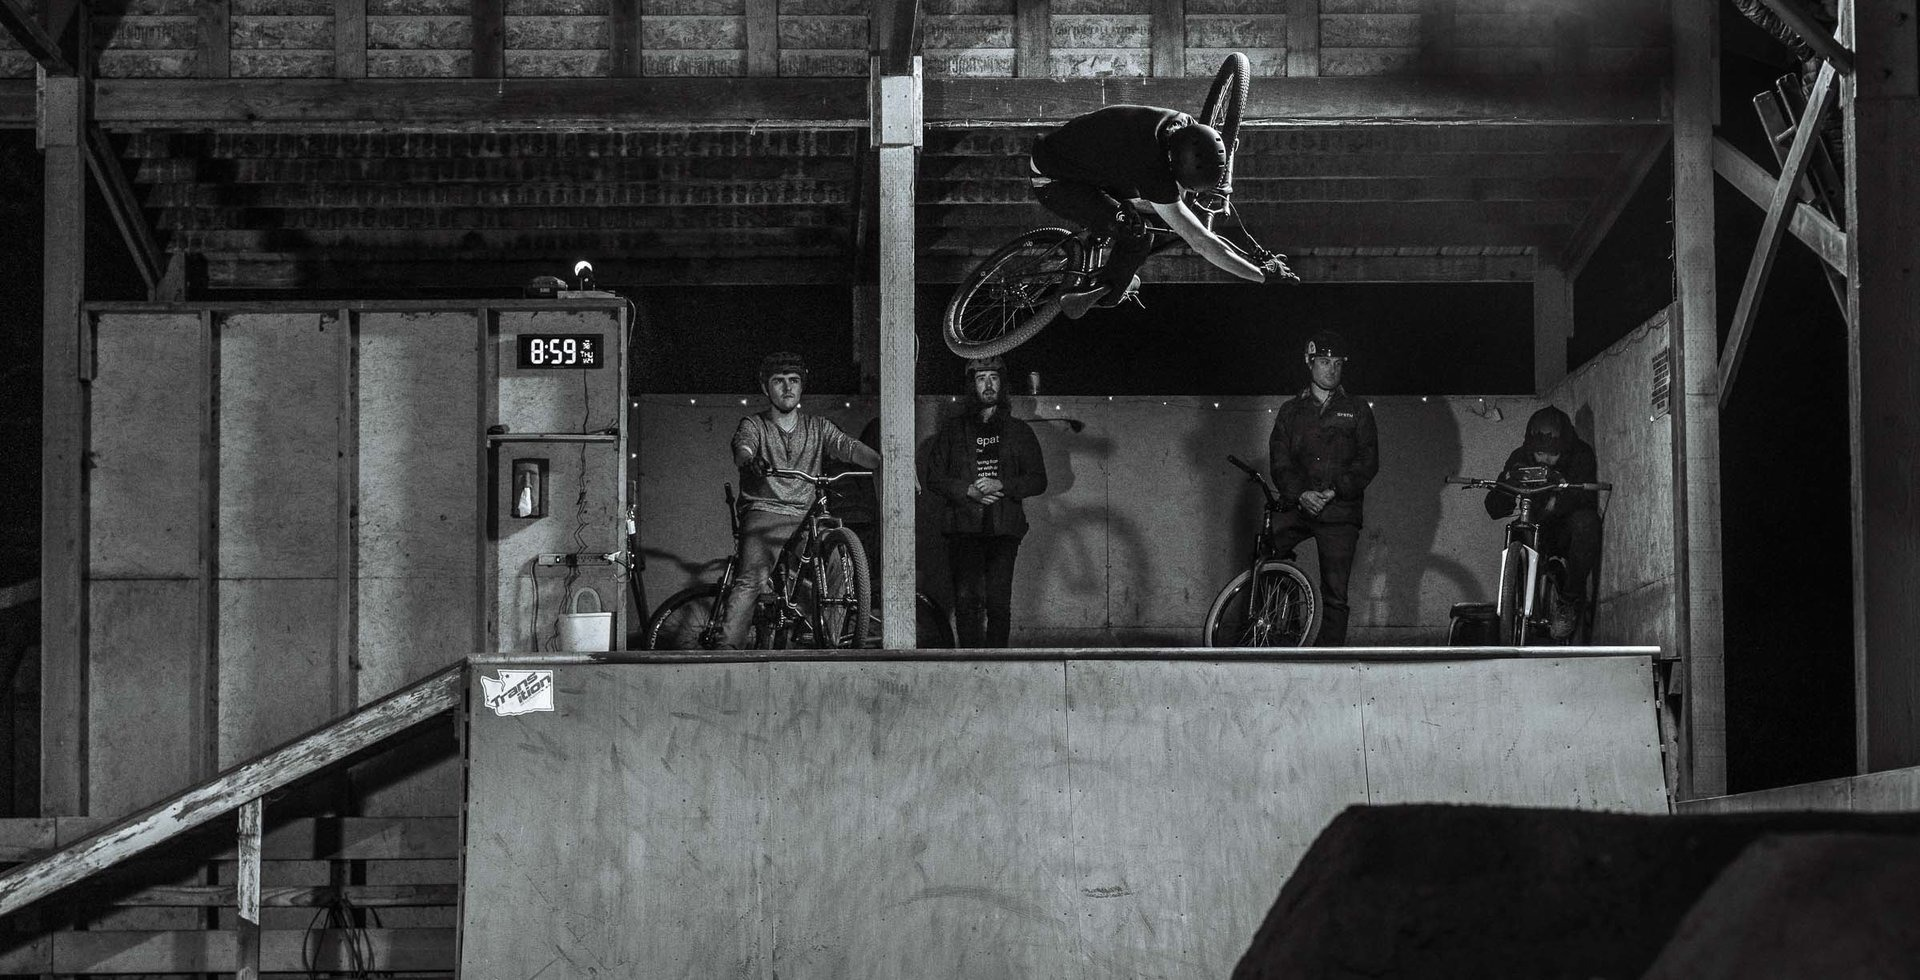 For Bellingham's hardcore bikers, the Bike Ranch is a frequent hangout during winter months. Billy Lewis blasts out of the quarter pipe as the rest of the crew watches on.